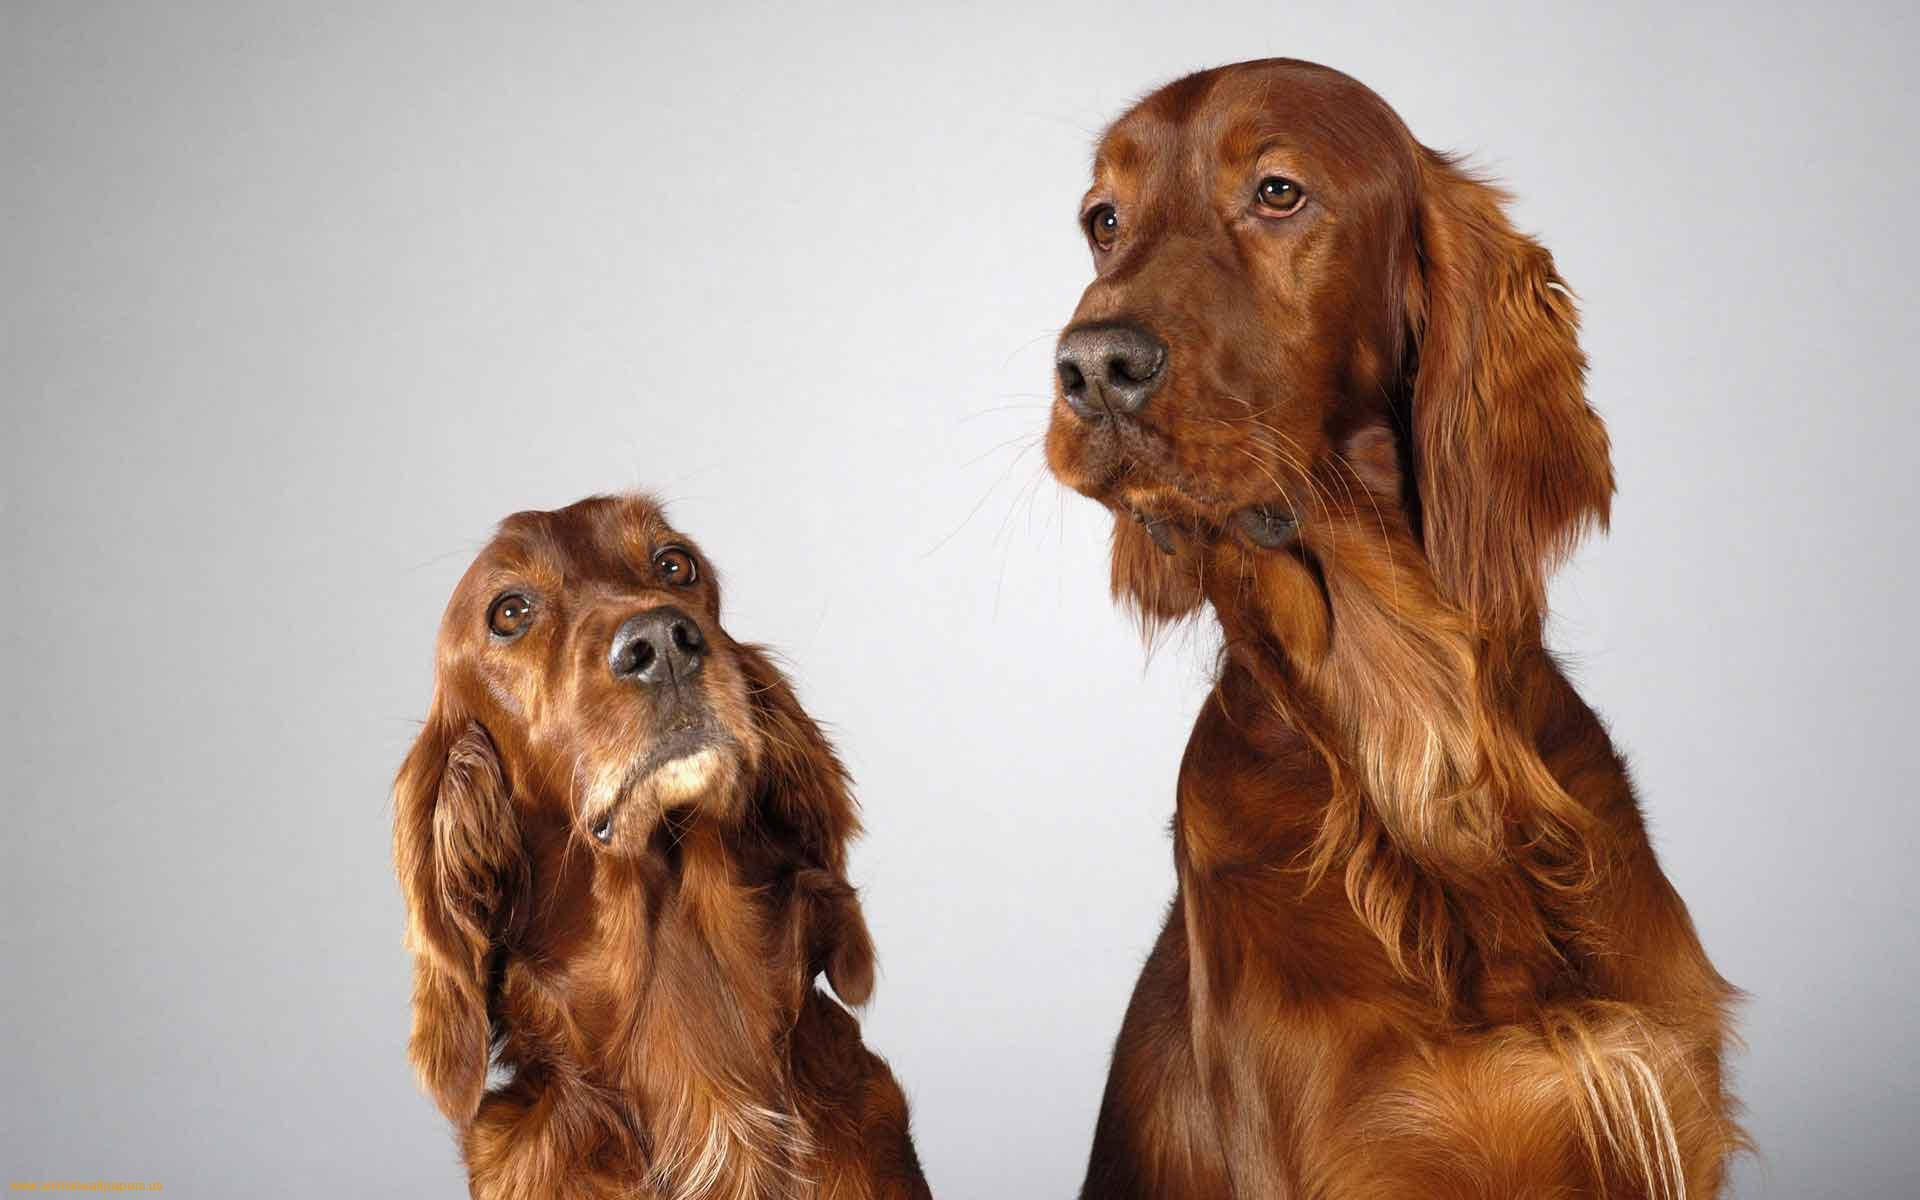 Two cute English Cocker Spaniel dogs photo and wallpaper ...